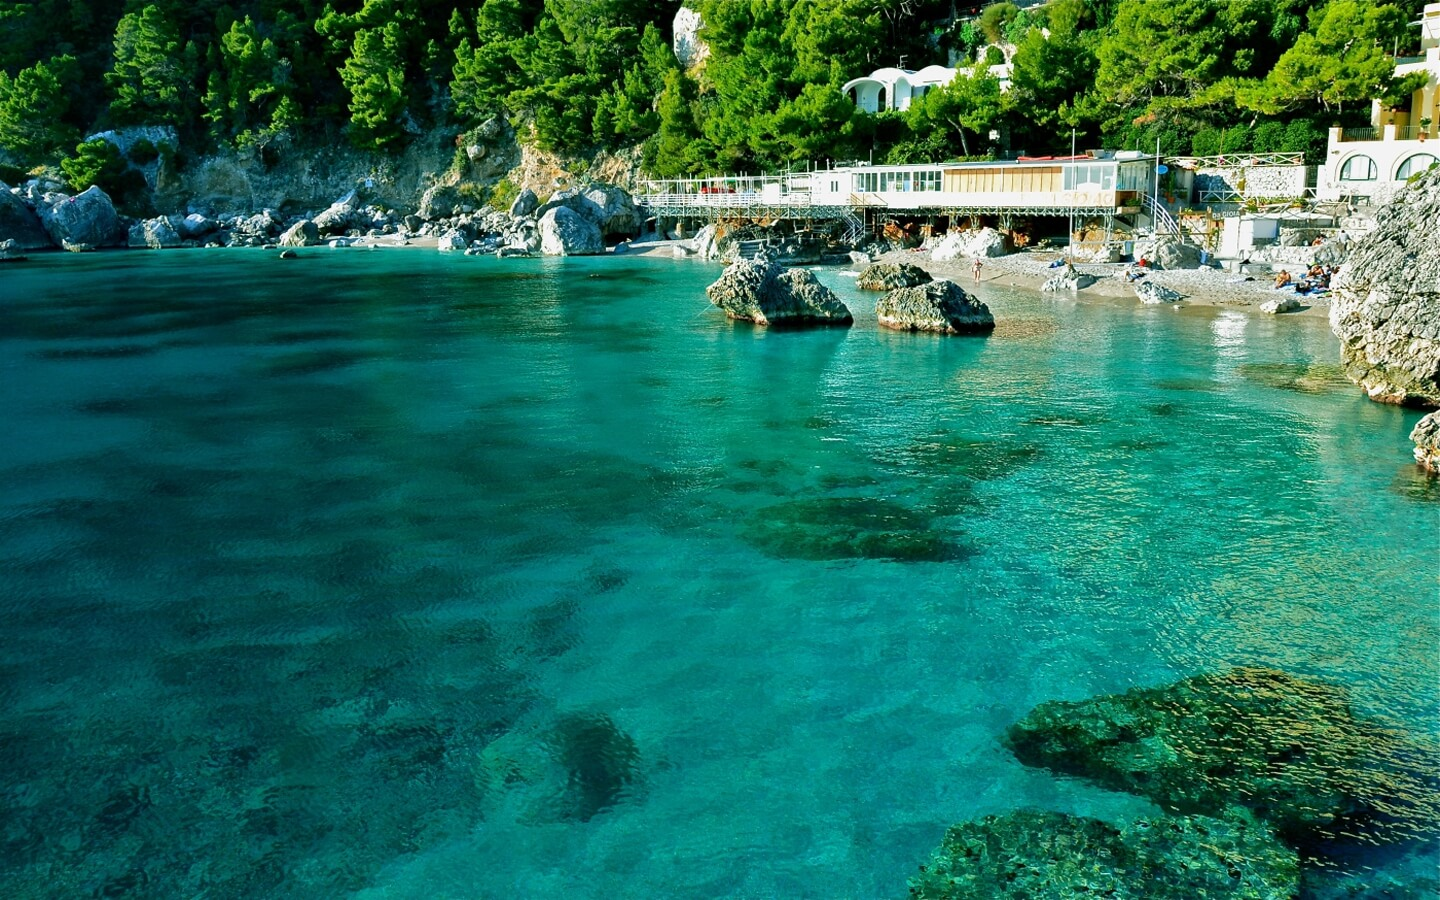 Beach guide for Capri - Andare al mare in Capri Island